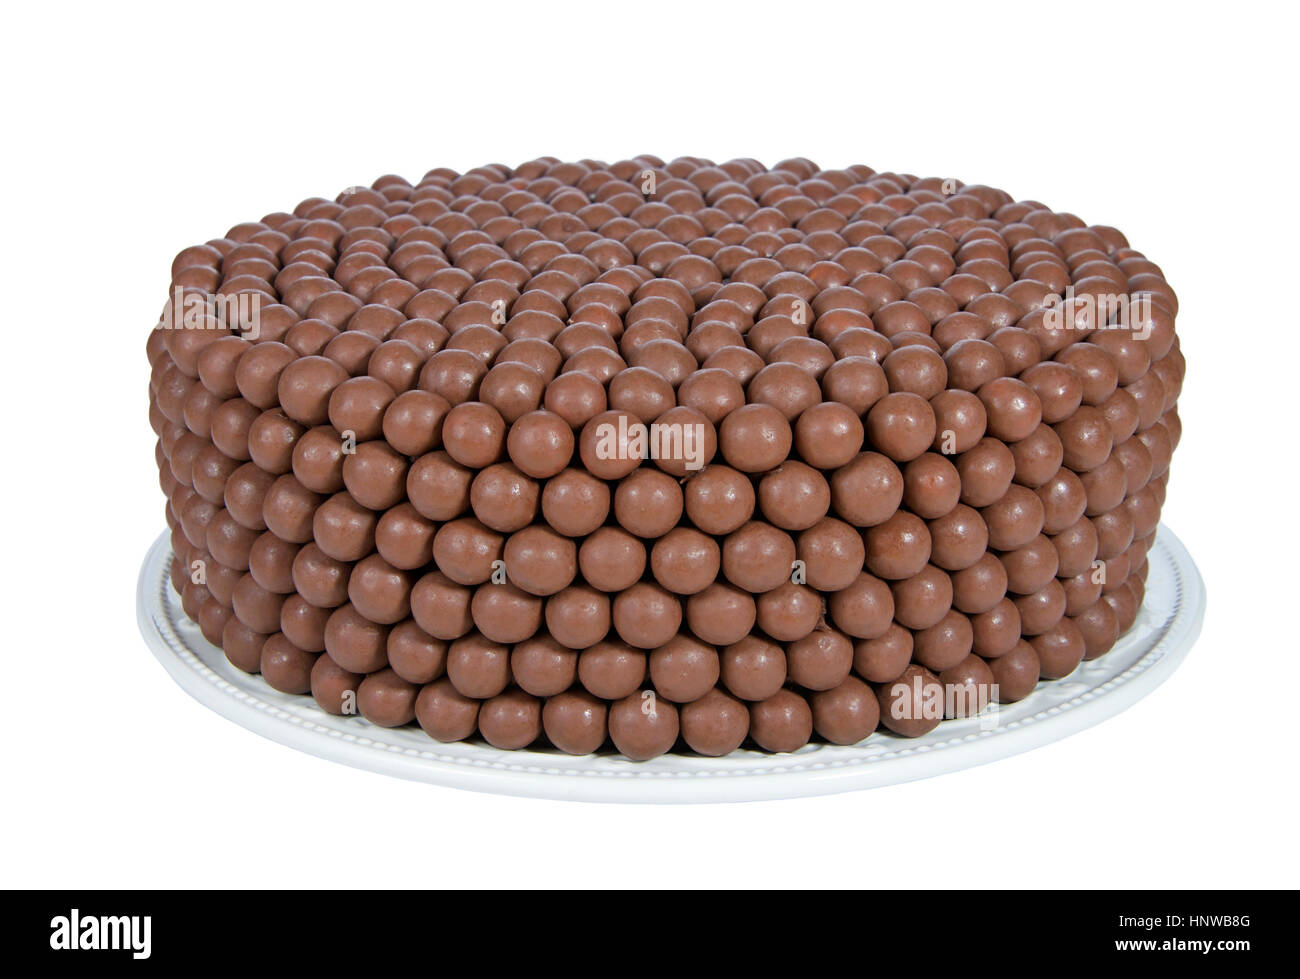 Chocolate Birthday Cake decorated with candy malt balls. Fast and easy home made cake for children or adult birthday party  sc 1 st  Alamy & Chocolate Birthday Cake decorated with candy malt balls. Fast and ...